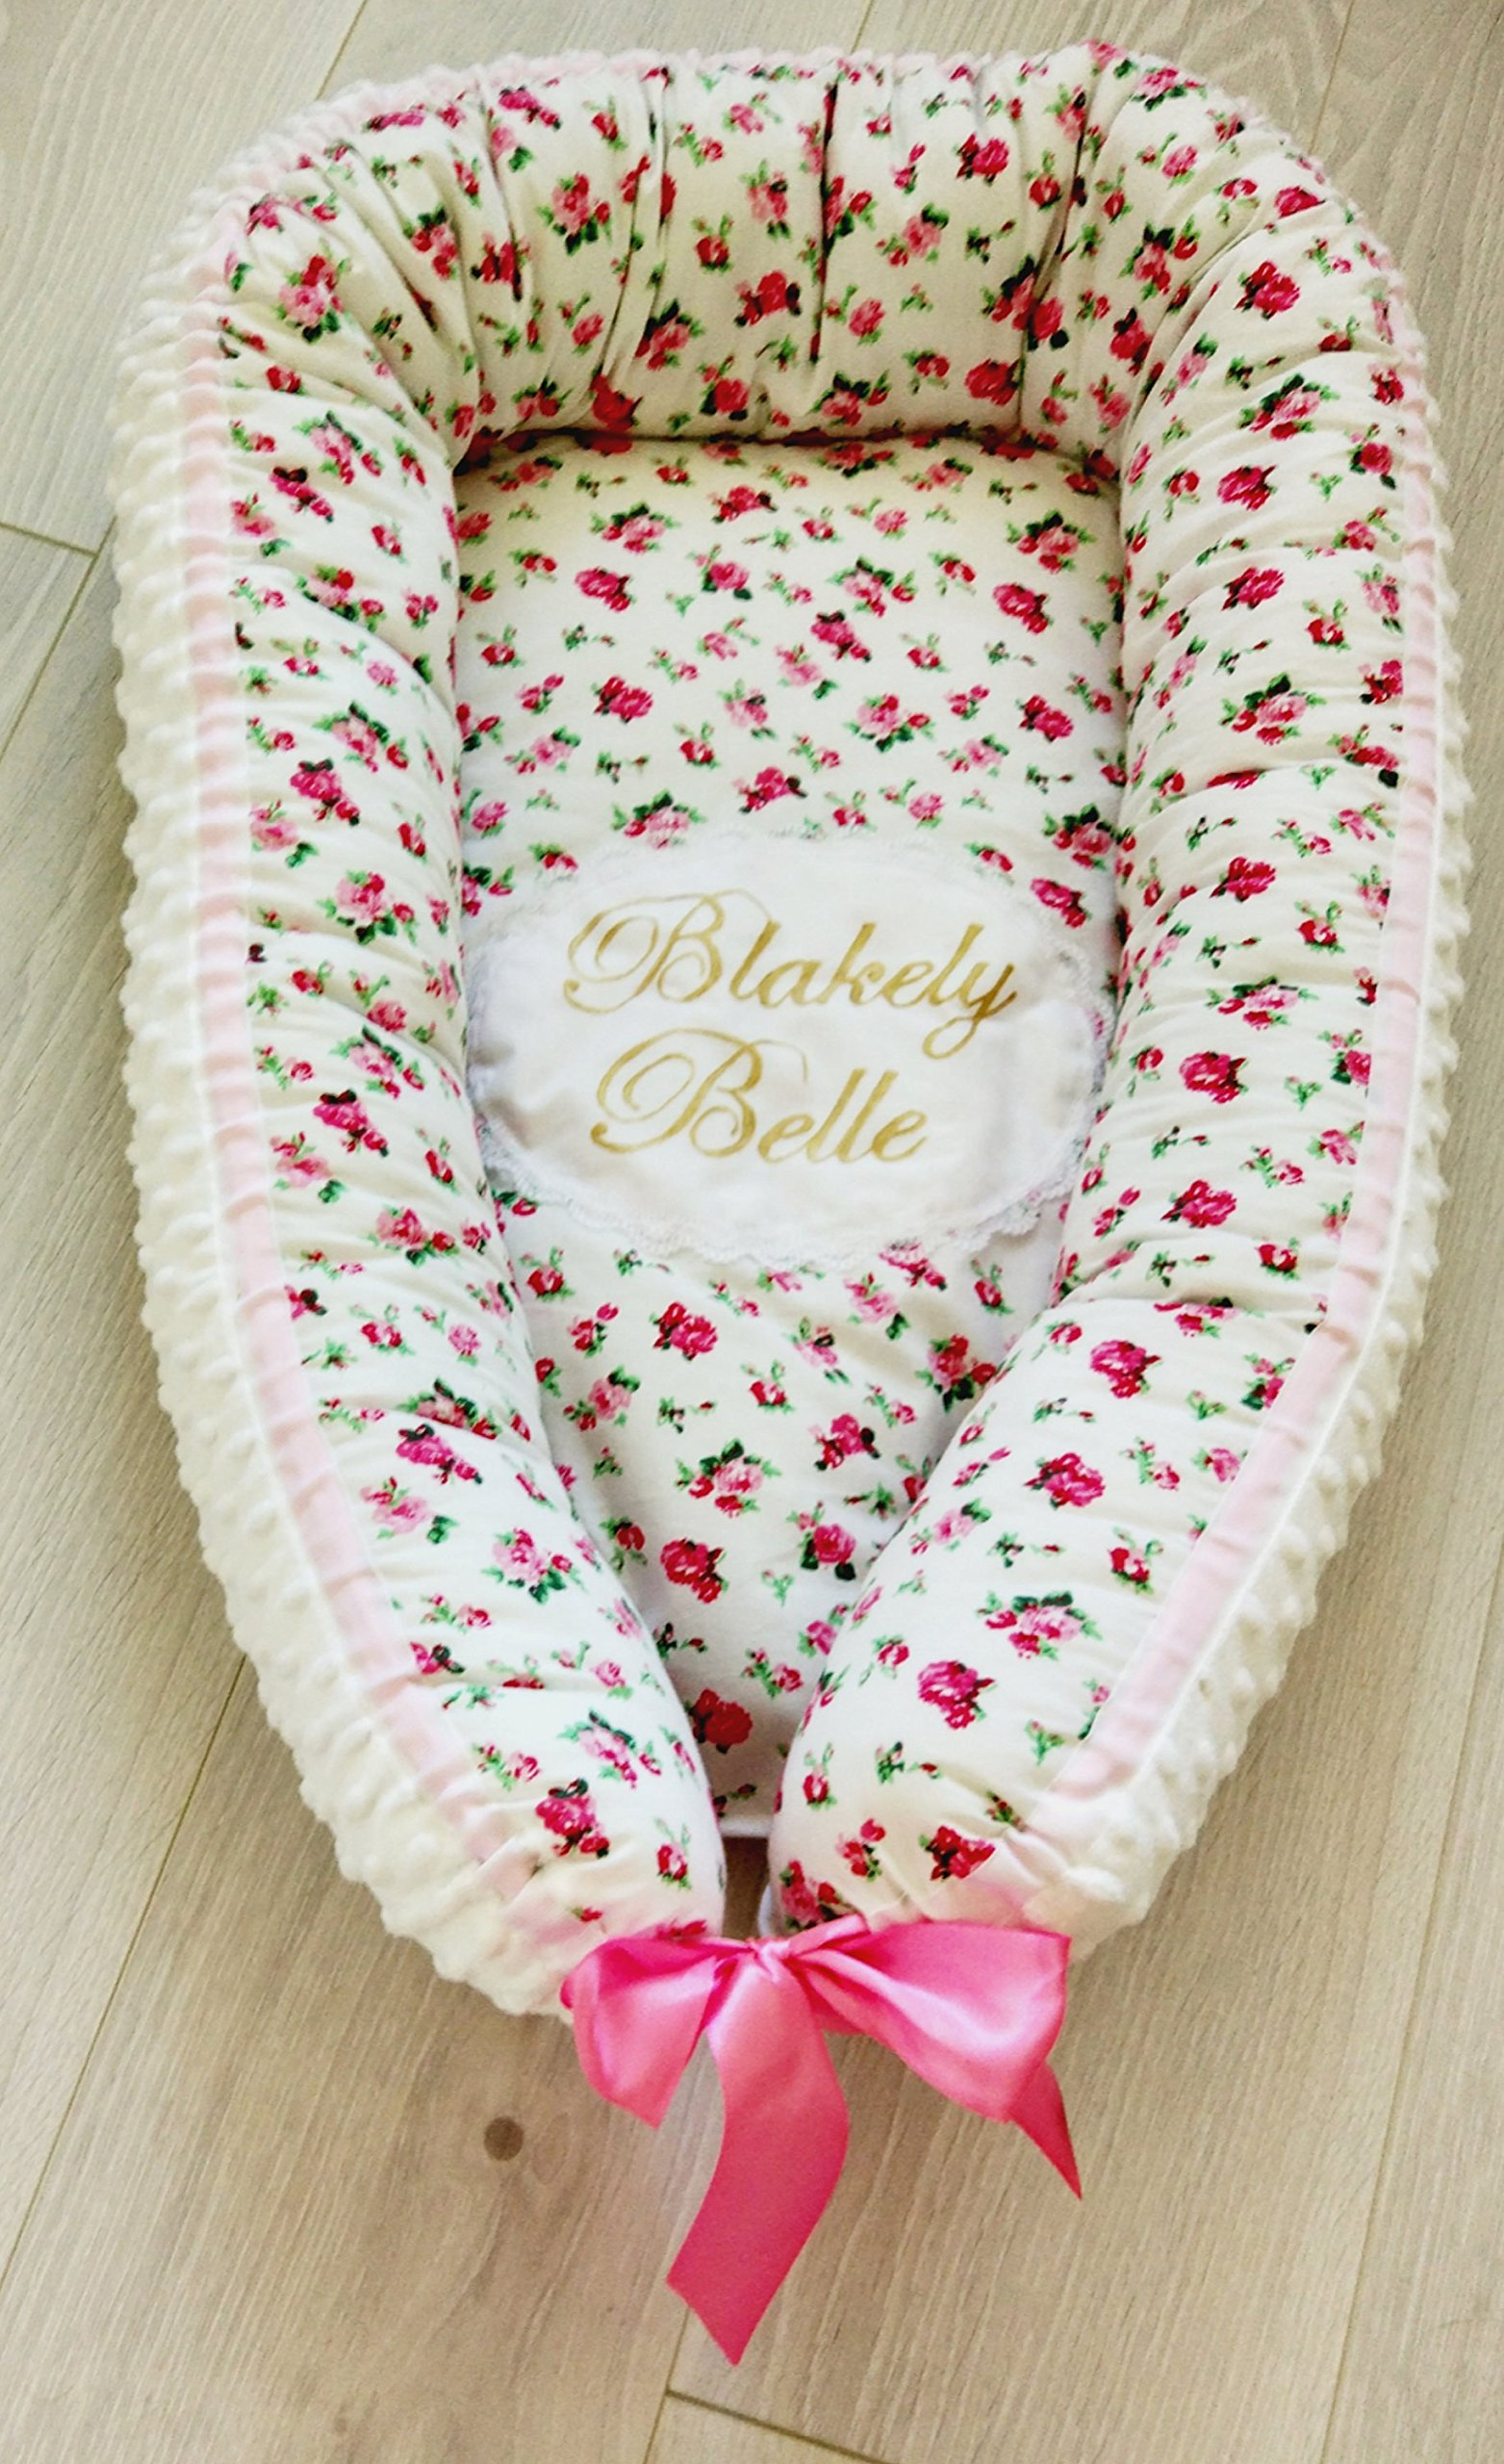 Personilized babynest, personilized baby gift, cocoon, baby cocoon, baby nest bed,crown print,baby bedding,baby shower gift,chevron print,sleeping nest,co sleeper